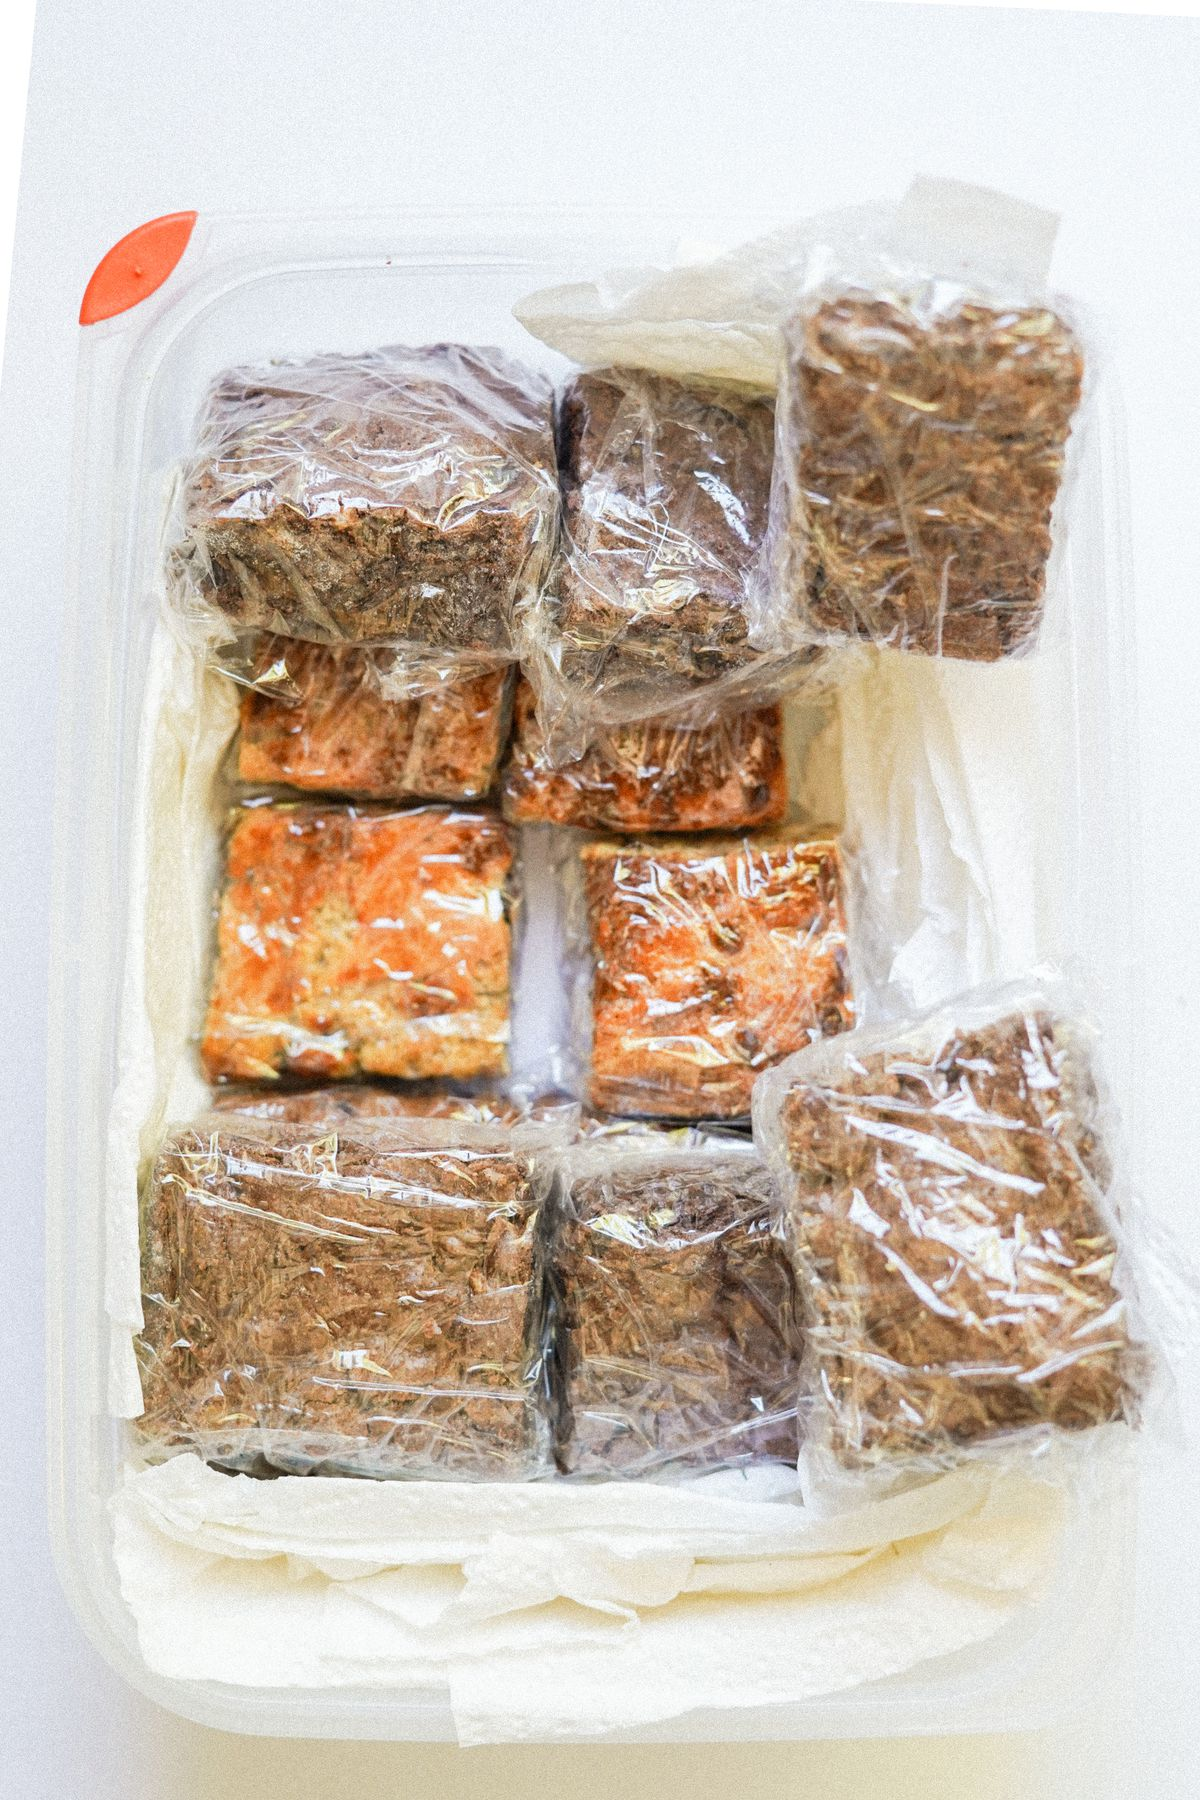 Brownies and blondies cut into squares and wrapped in plastic wrap, packed in a clear Tupperware.